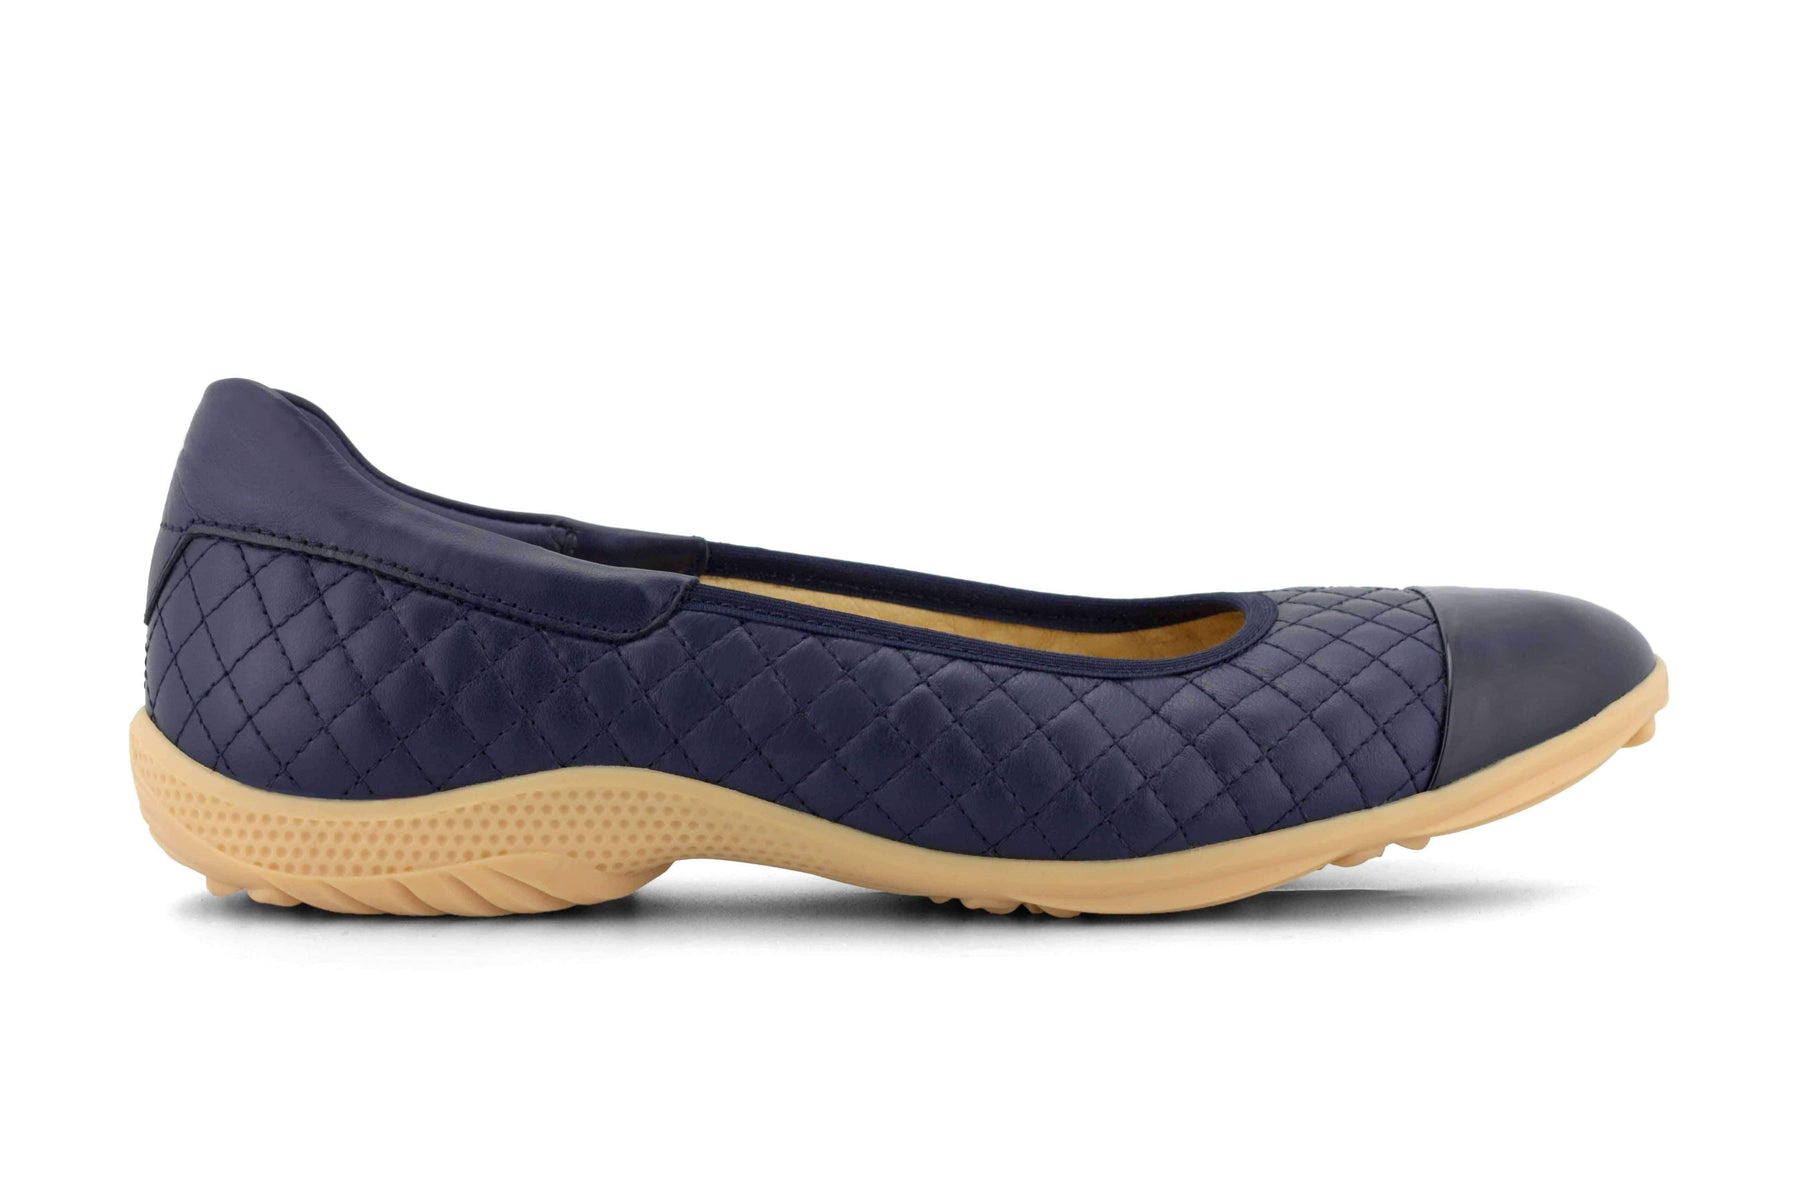 Ladies Golf Shoes | Runway Navy | Royal Albartross Runway Navy WB-RNNY-UK07-US09